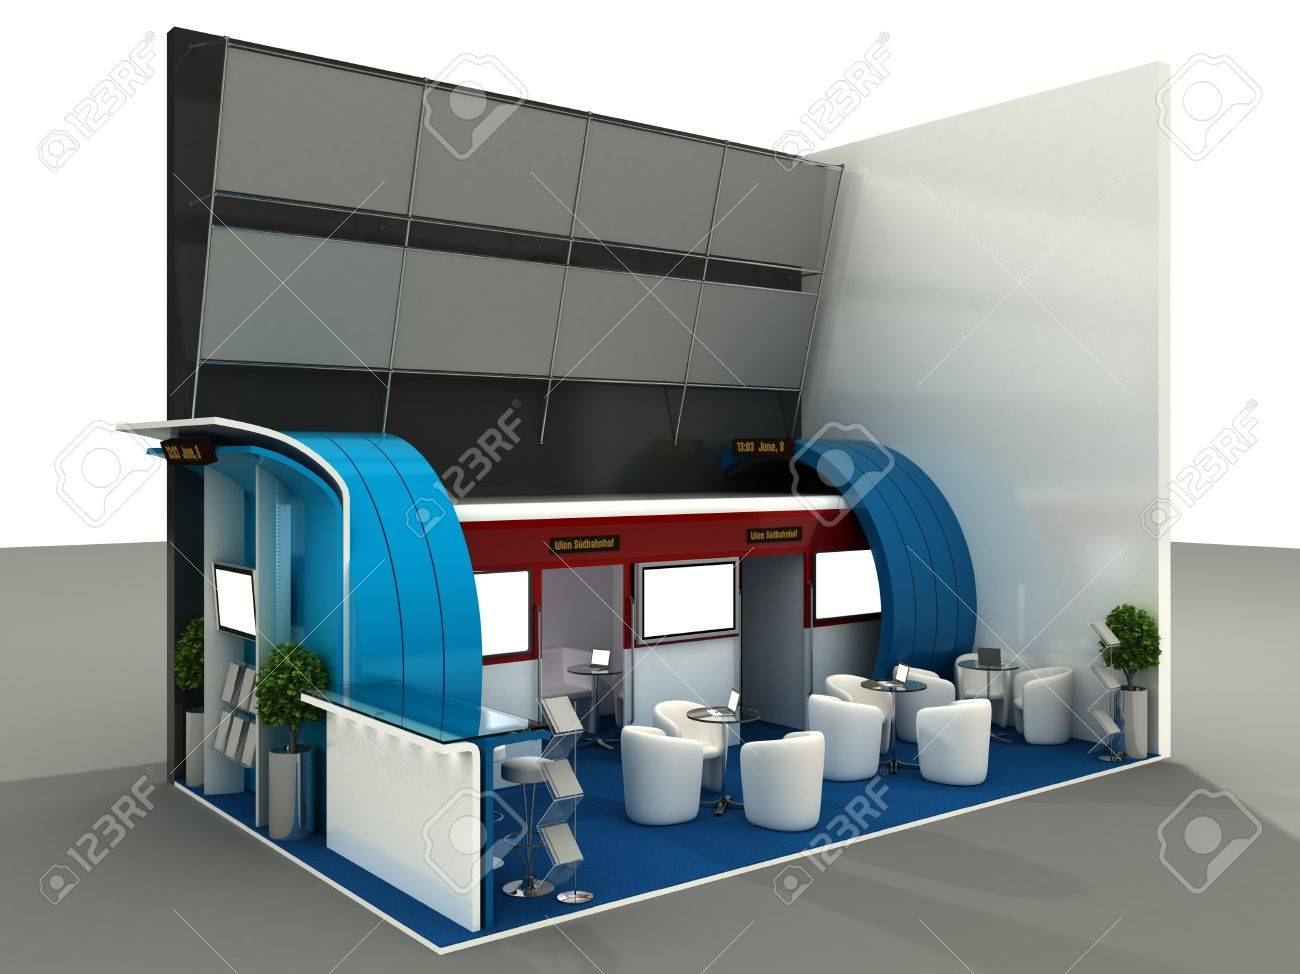 Exhibition Stand Interiors : Exhibition stand interior sample computer art d series stock